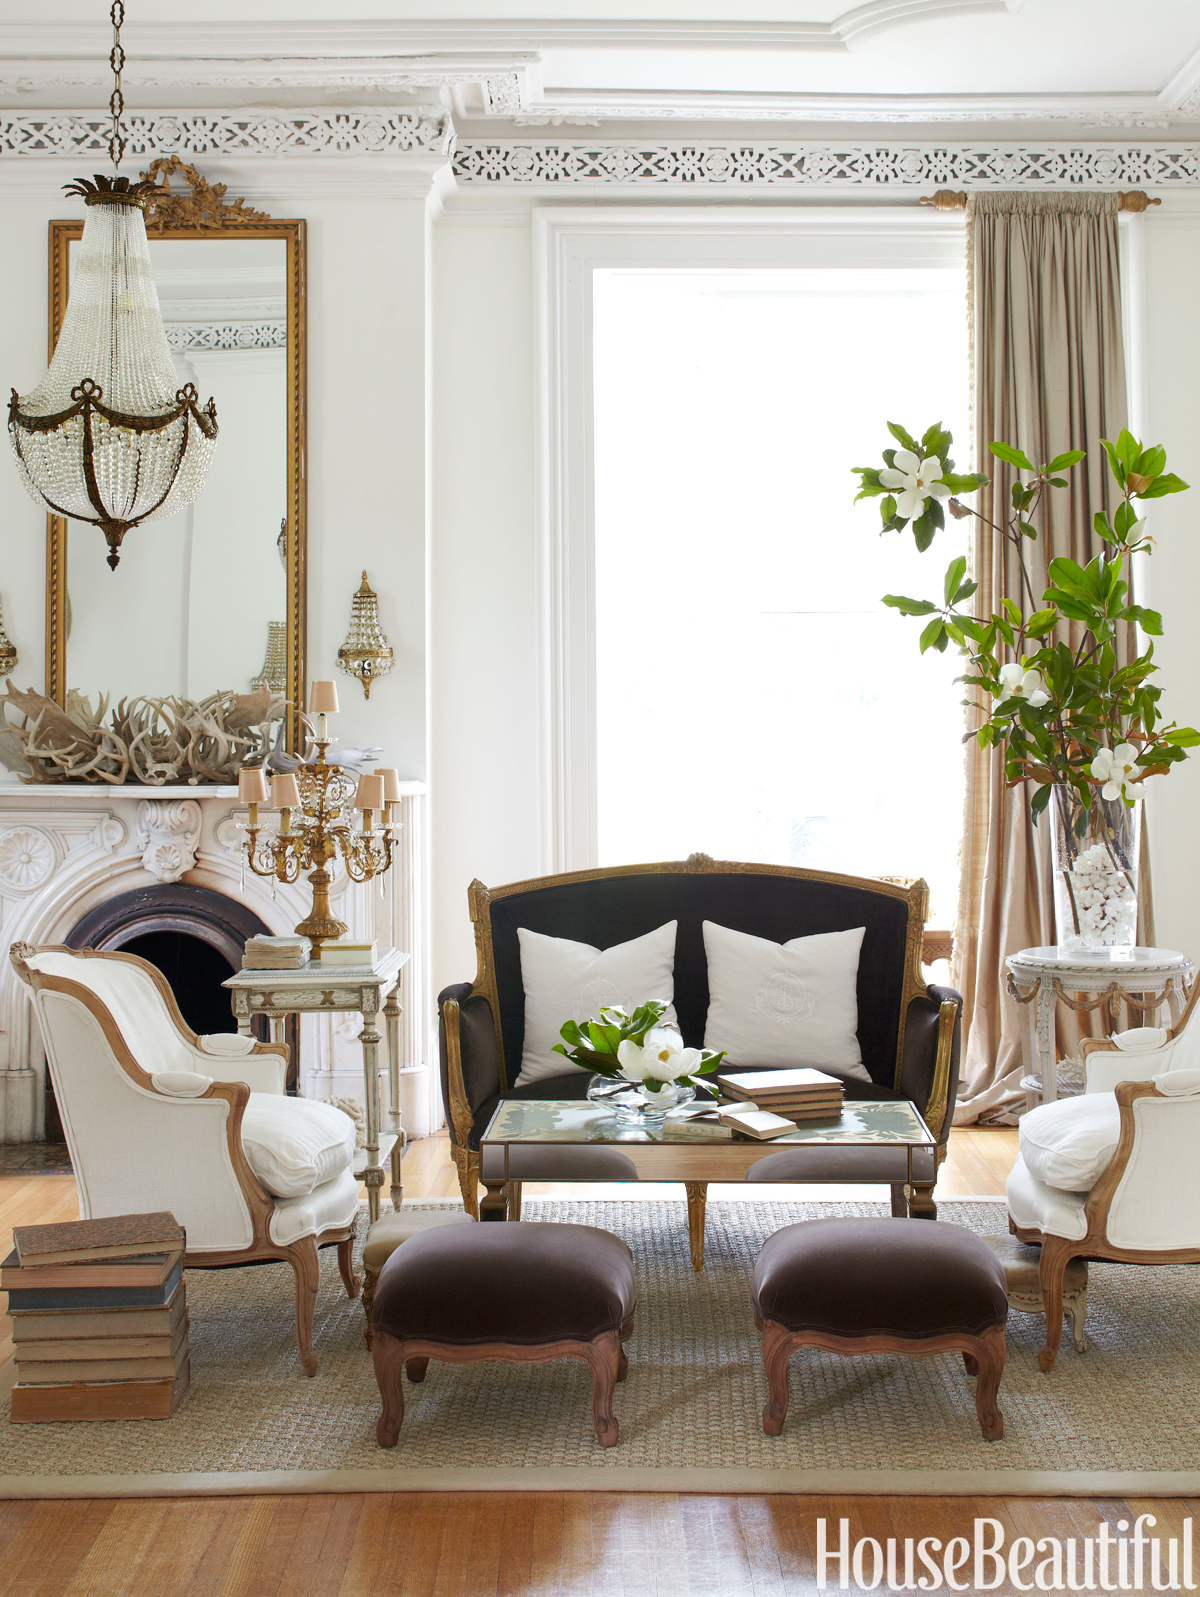 styled space} European Glamour in the Midwest USA